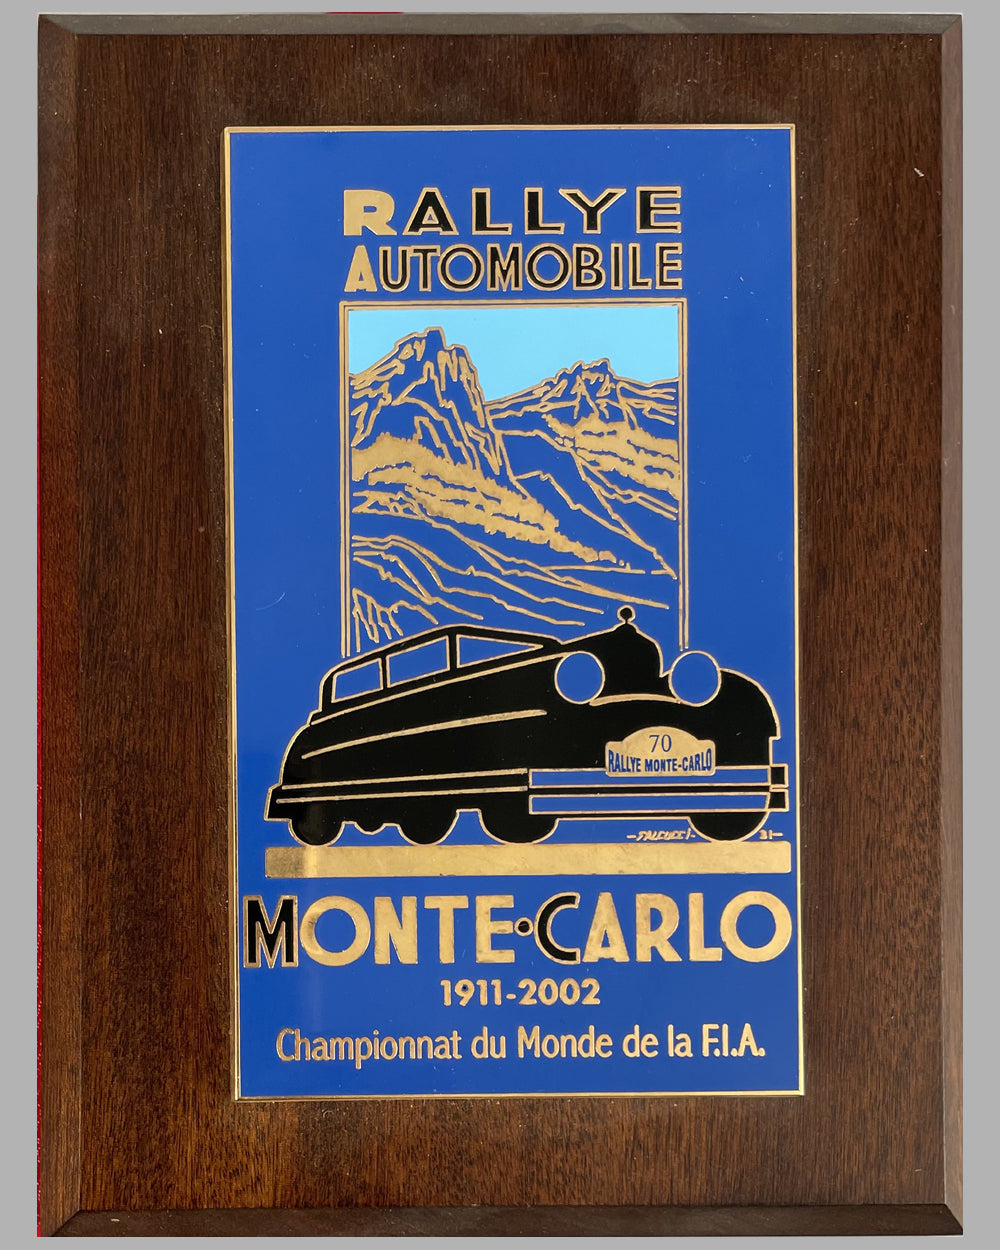 70th Rallye Automobile of Monte Carlo 2002 participant plaque